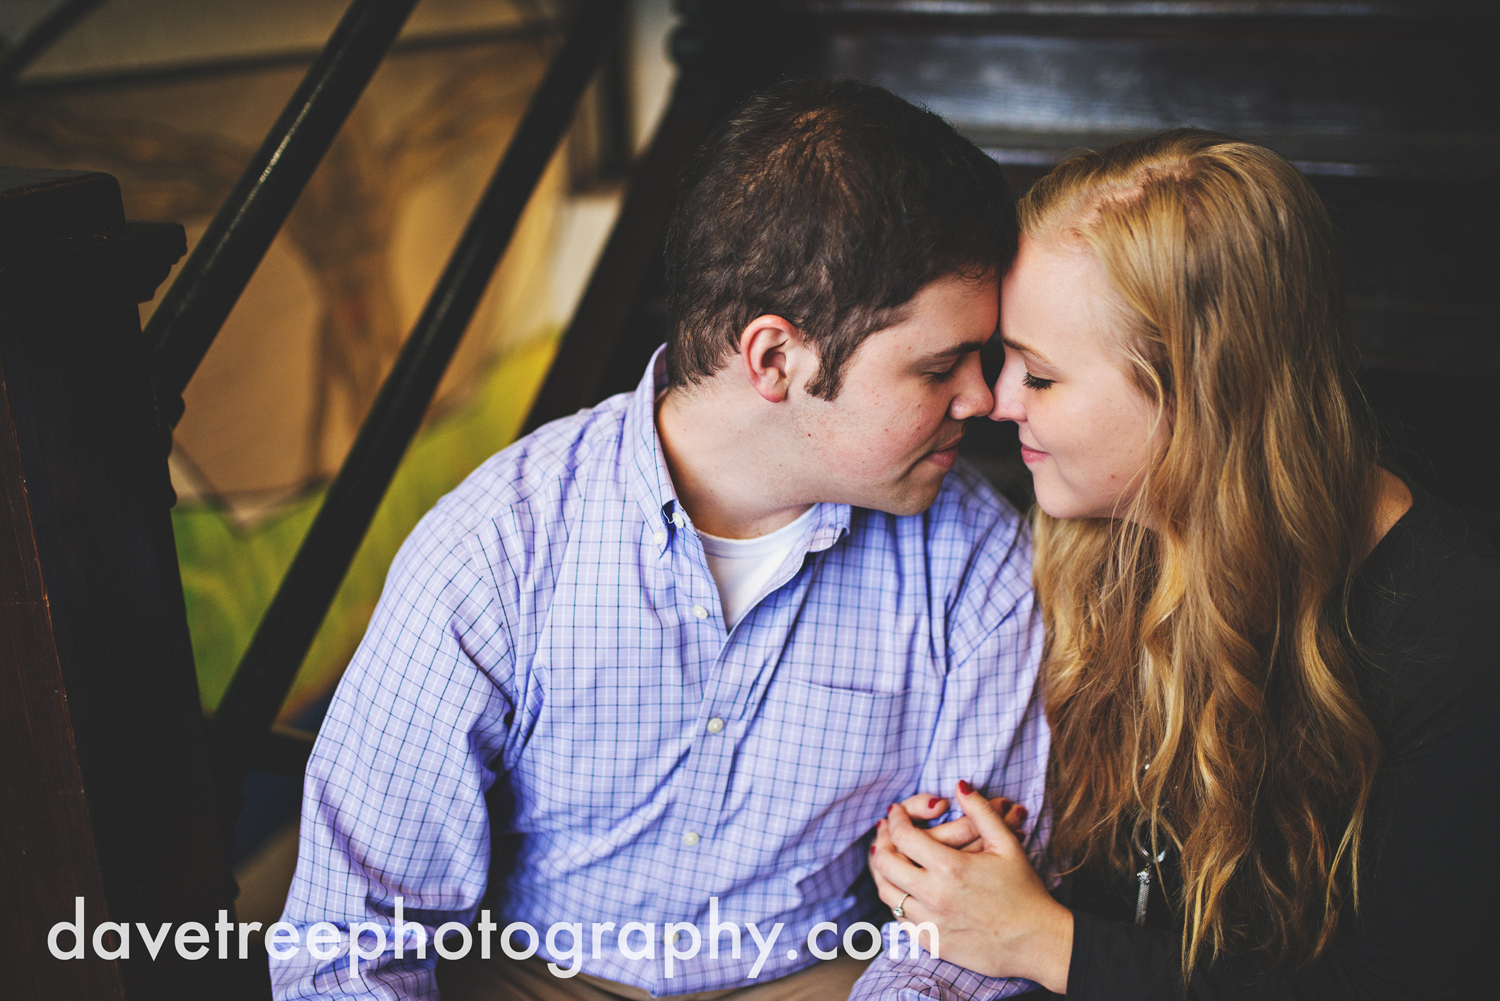 kalamazoo_engagement_photographer_317.jpg